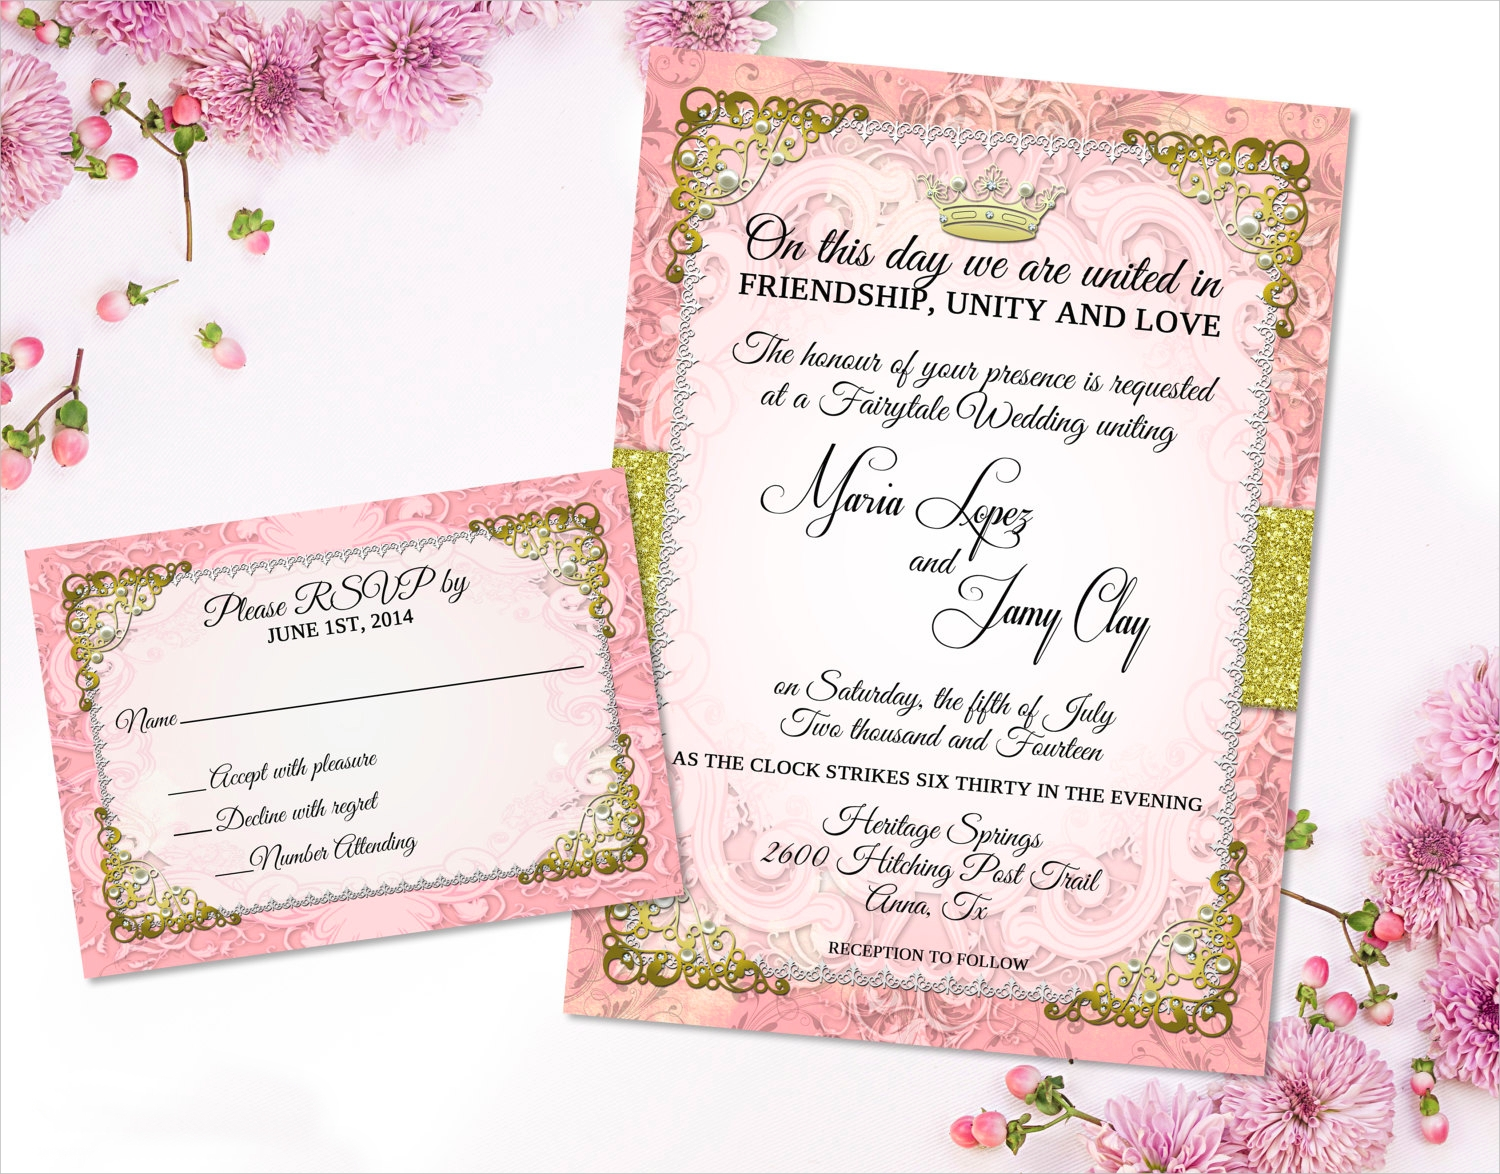 13 Fairytale Wedding Invitation Designs and Examples PSD AI